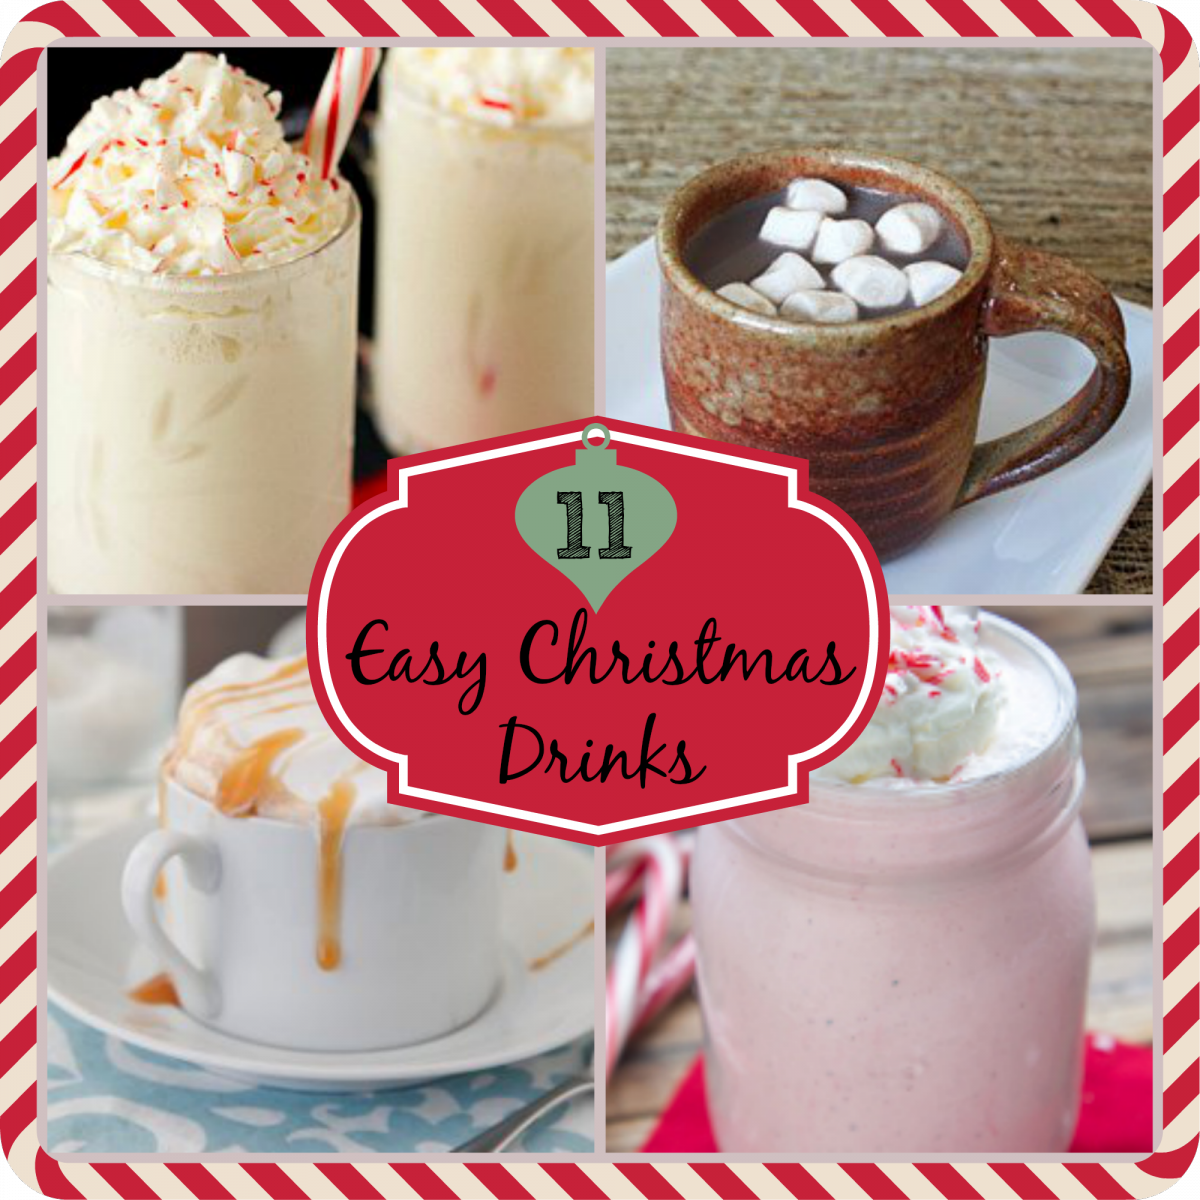 11 Easy Christmas Drinks